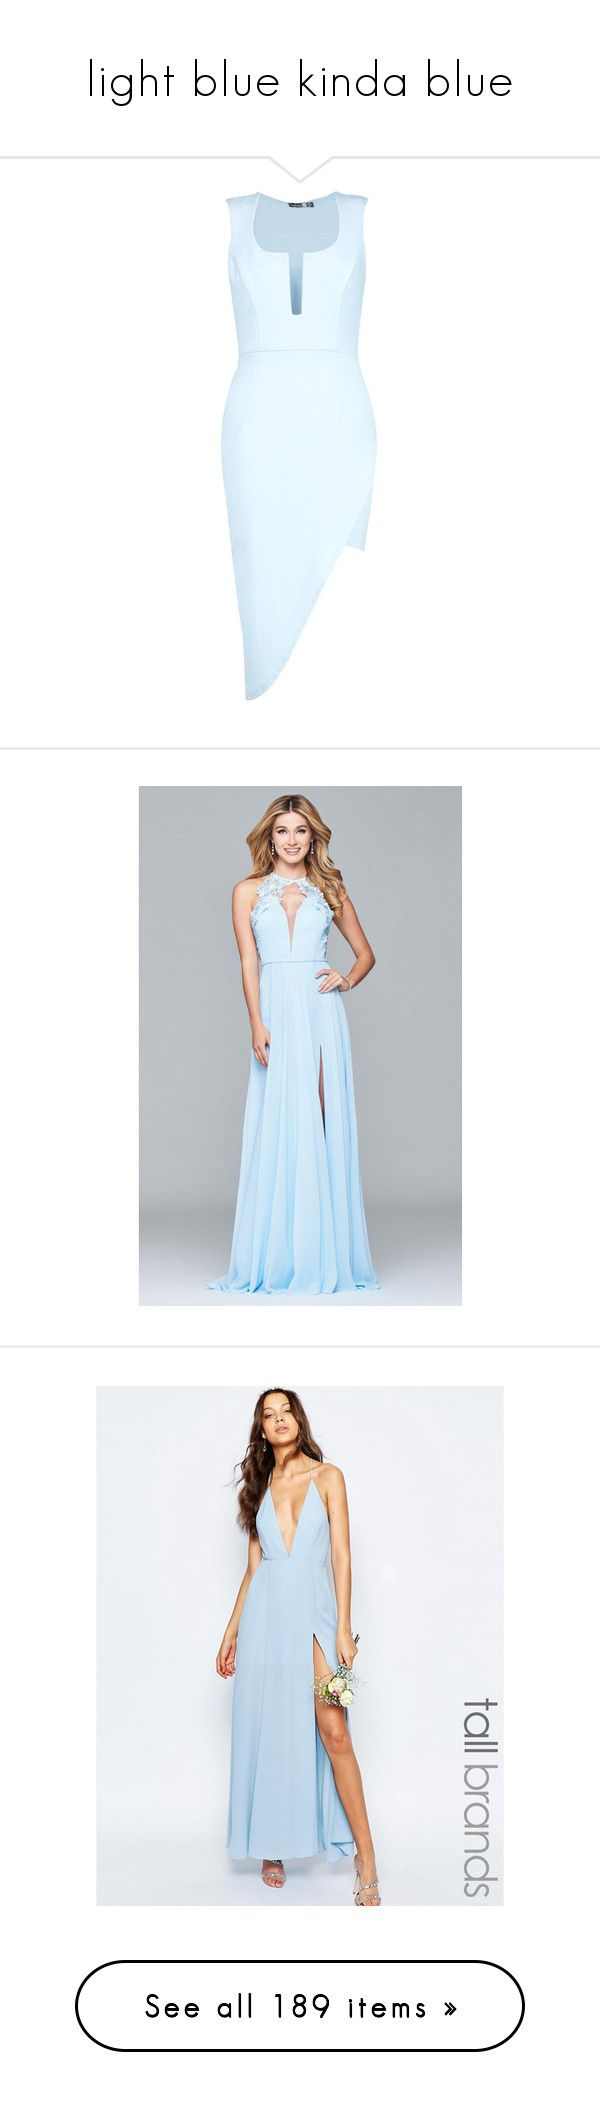 """light blue kinda blue"" by aliceridler ❤ liked on Polyvore featuring dresses, bodycon mini dress, blue maxi dress, maxi dresses, bodycon dress, wrap maxi dress, gowns, cloud blue, formal dresses and lace prom dresses"